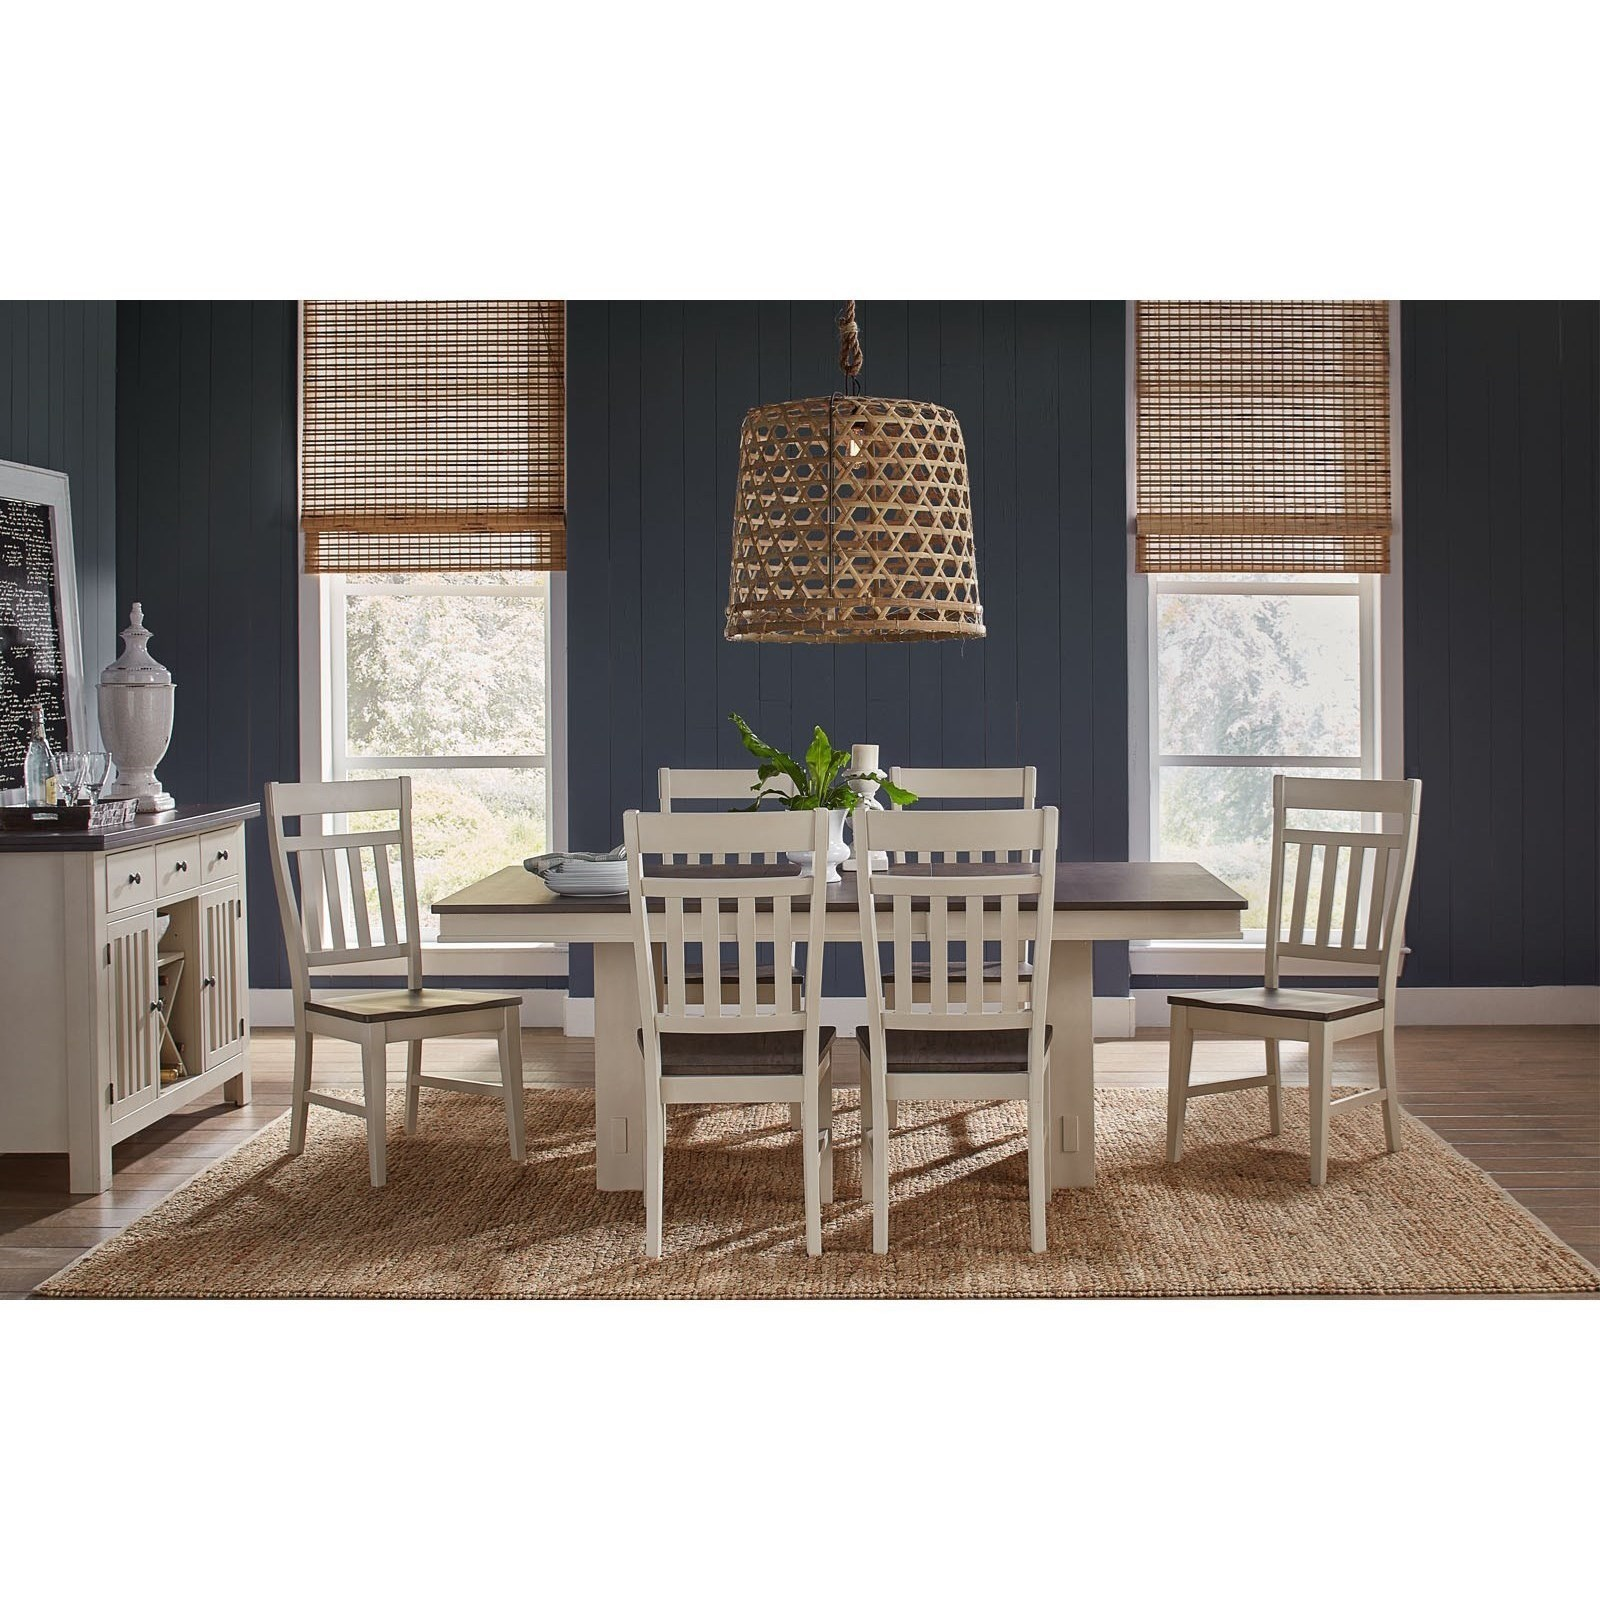 Bremerton 7-Piece Table and Chair Set by AAmerica at Zak's Home